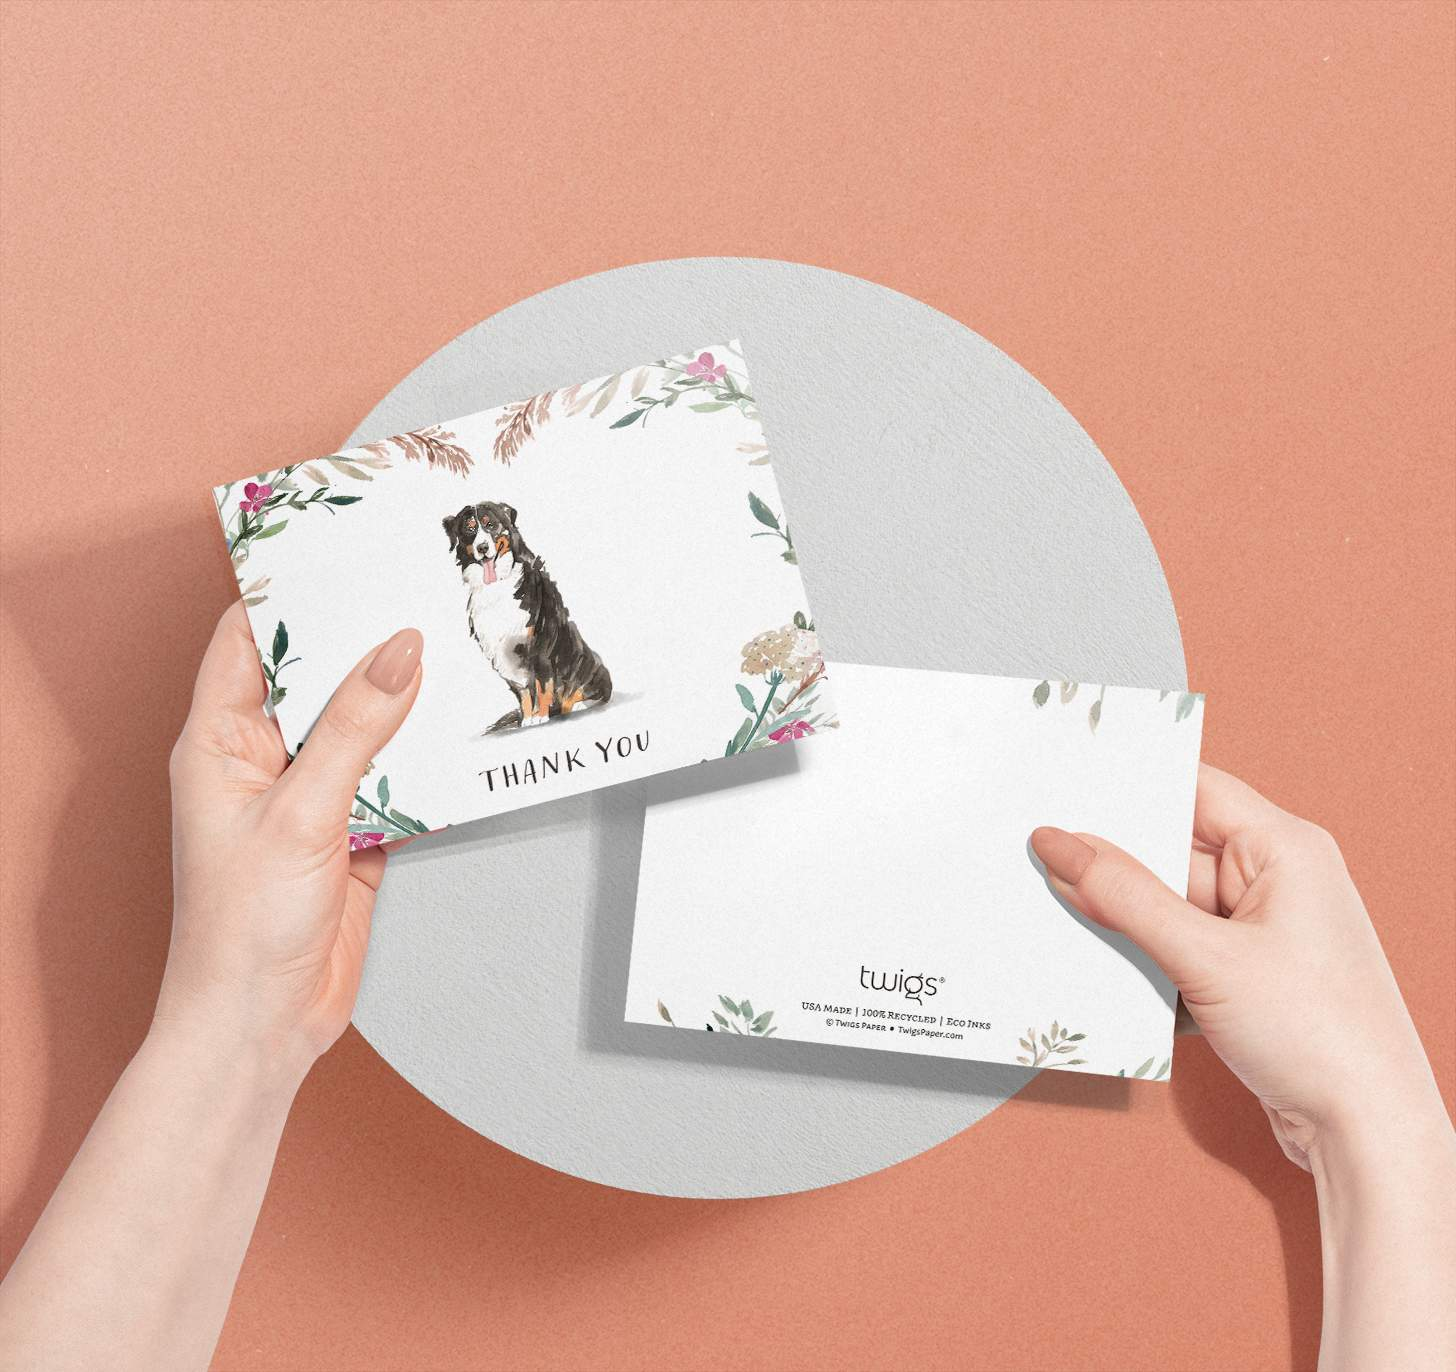 Woman's hands holding card with Bernese mountain dog design